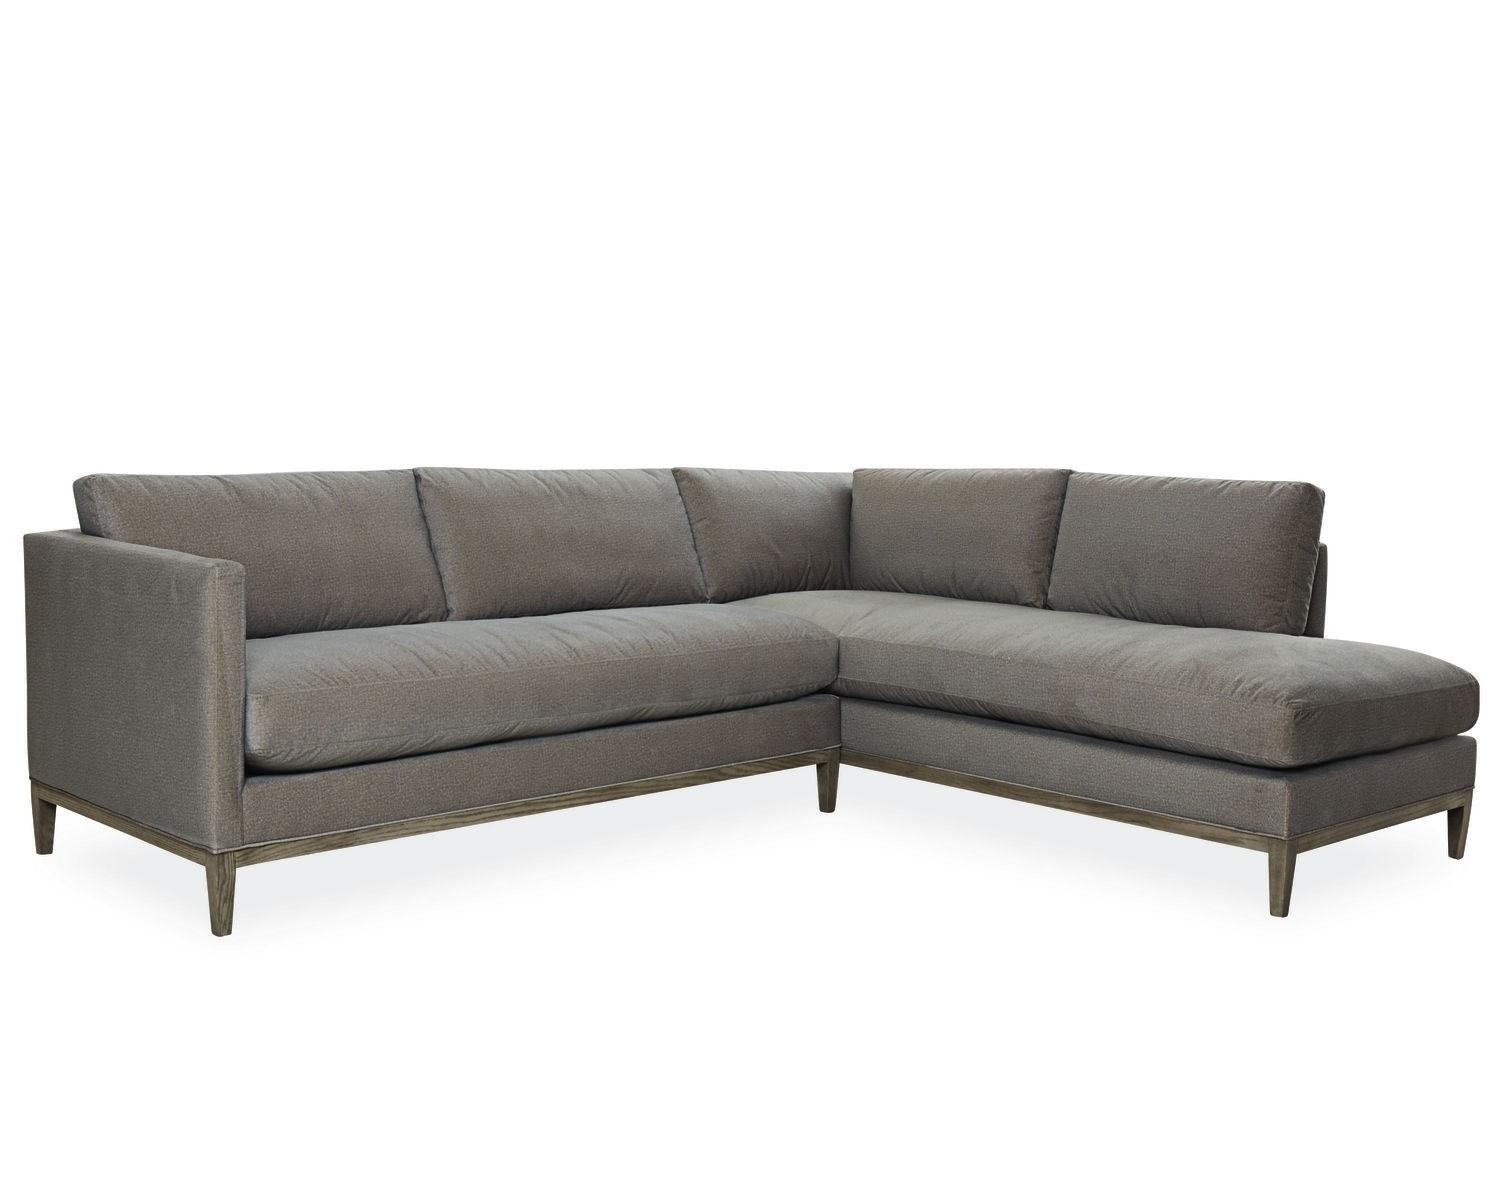 American Furniture | Palm Springs Chaise Sectional | Lee Industries Intended For Lee Industries Sectional (Image 5 of 20)